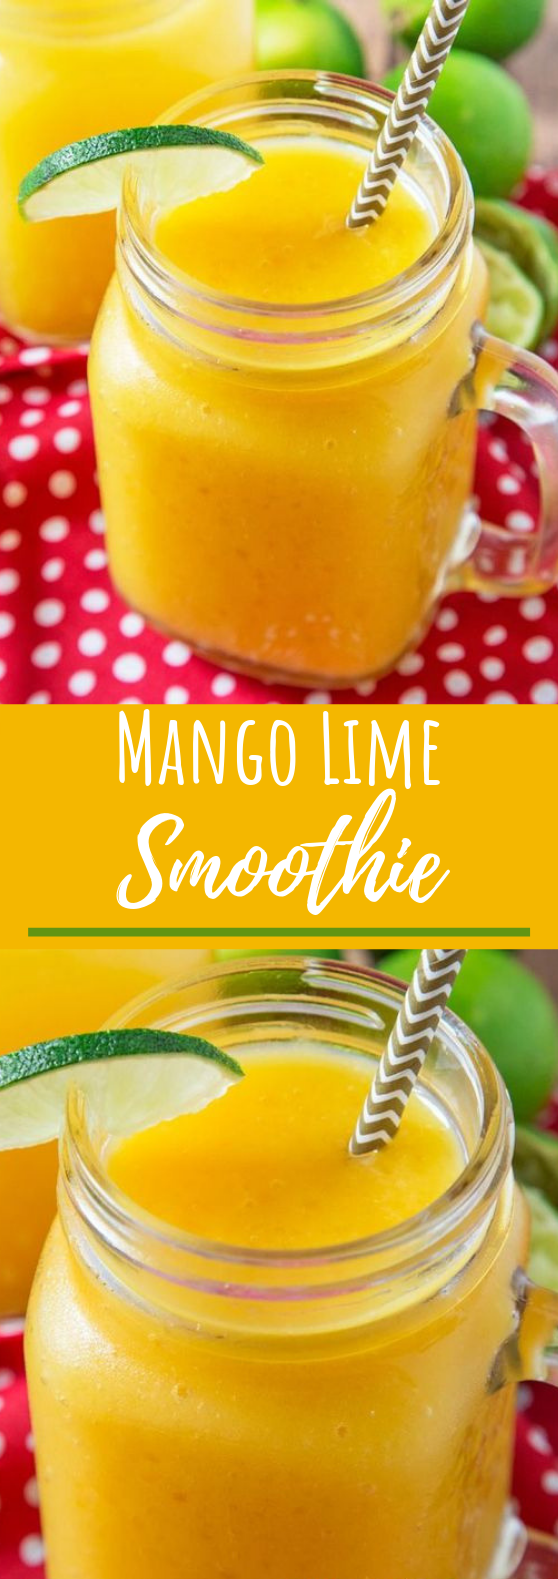 Mango Lime Smoothie #drinks #smoothies